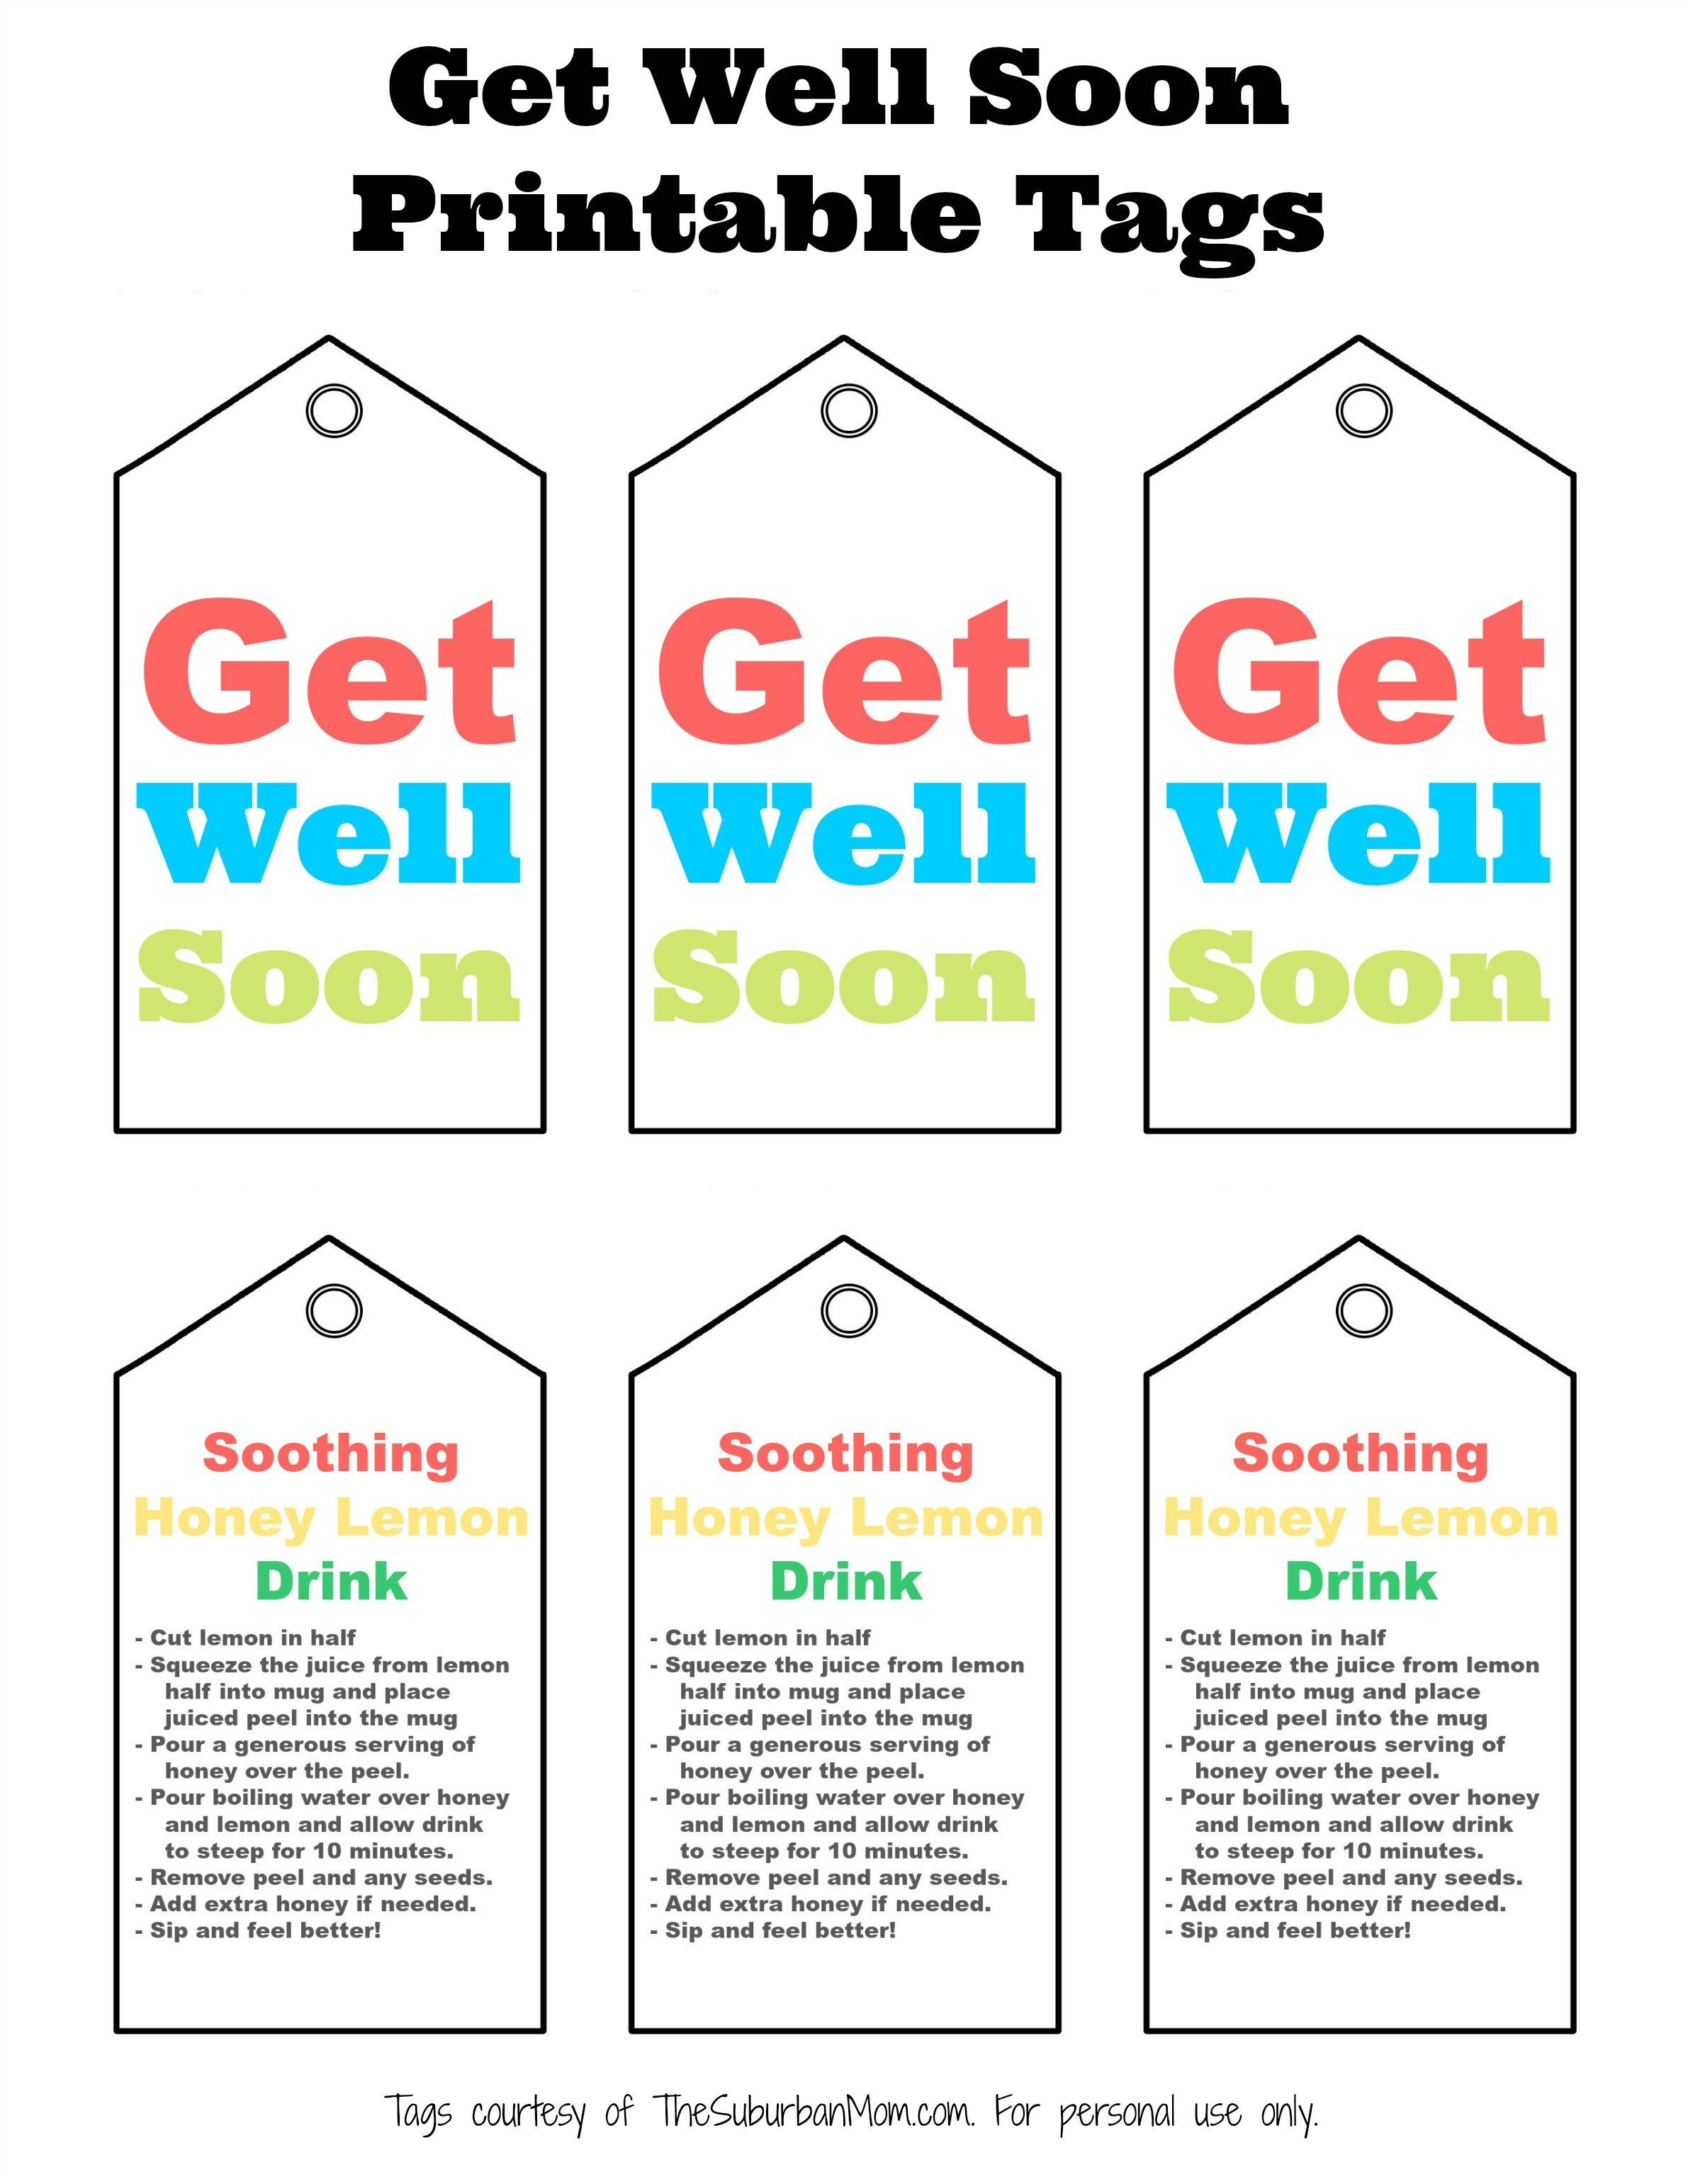 photo regarding Get Well Soon Printable titled Get hold of Perfectly Shortly Reward Basket With Absolutely free Printable Tag